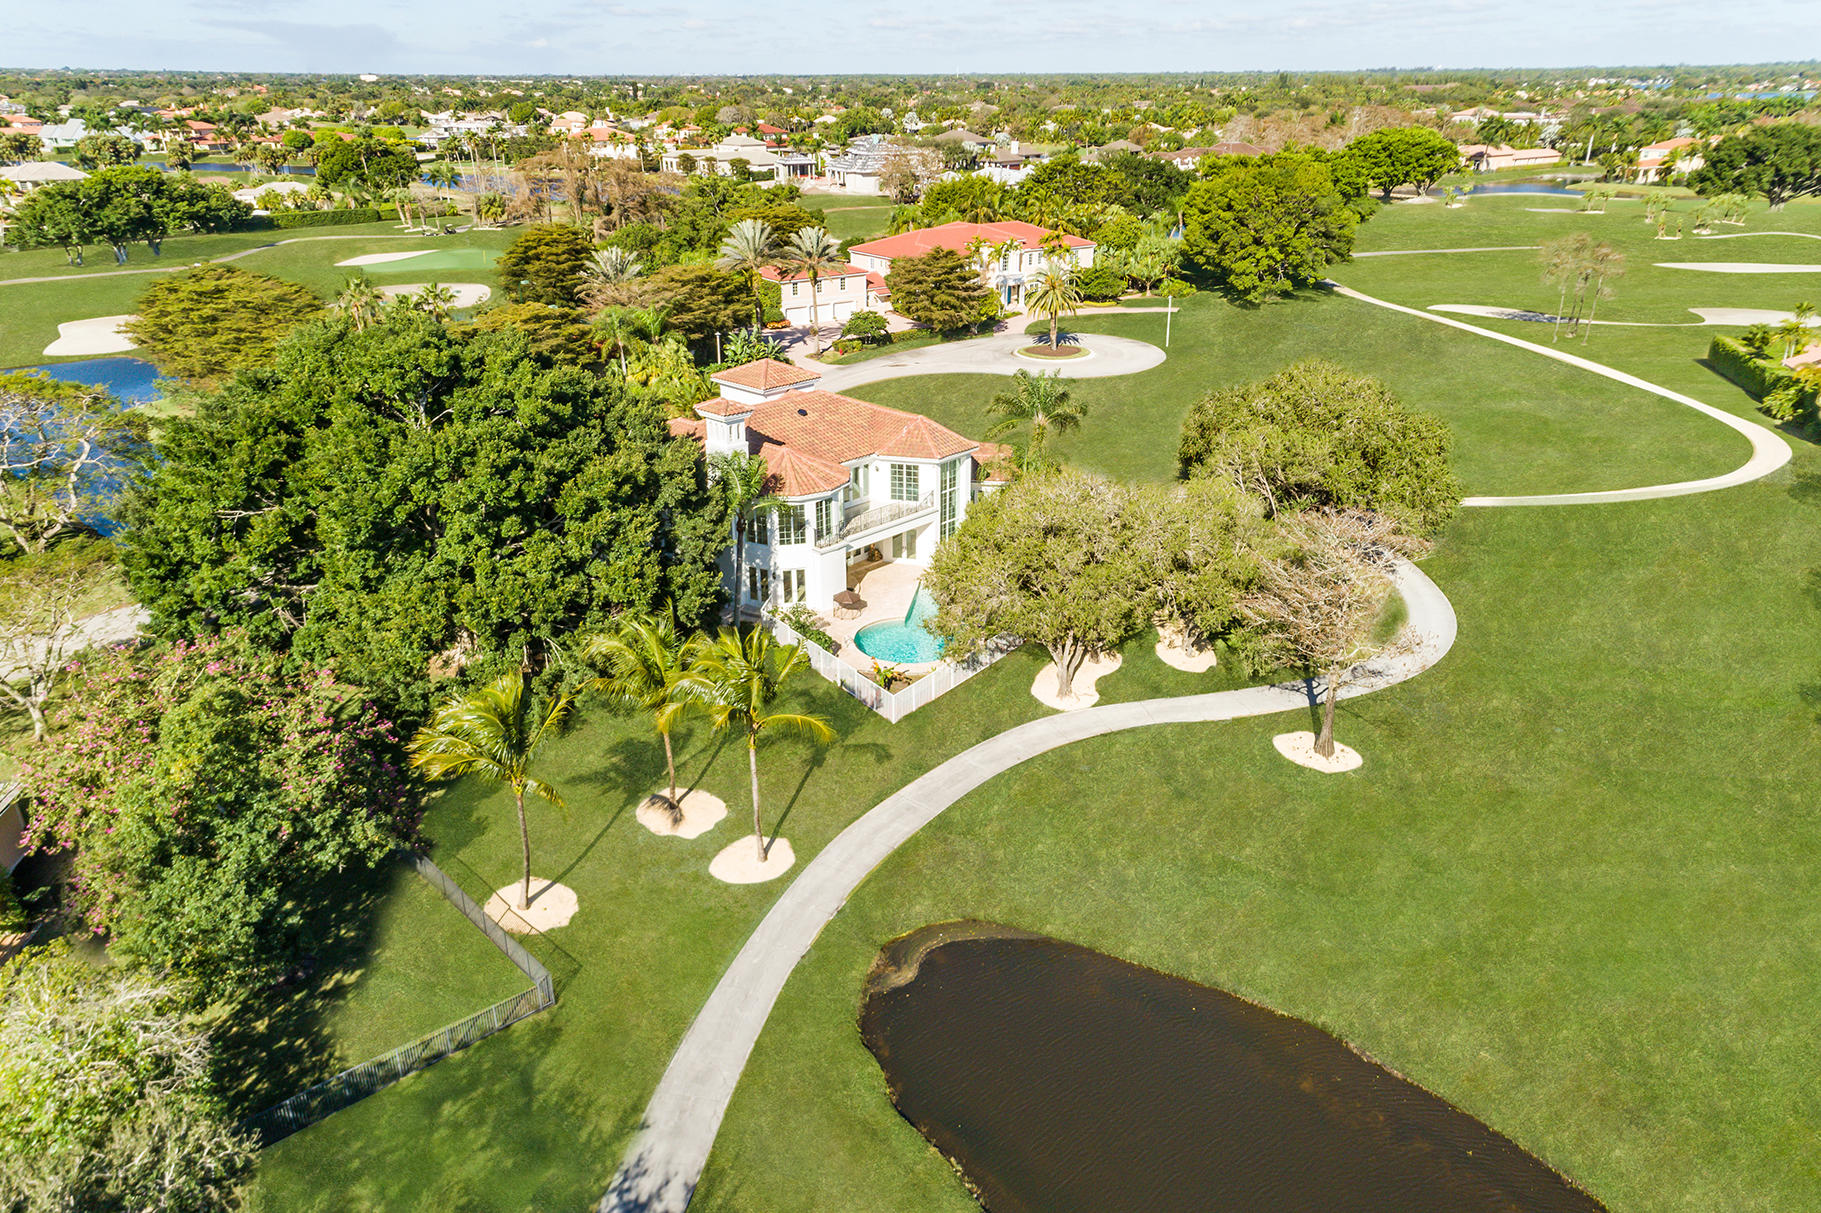 2410 Muir Circle, Wellington, Florida 33414, 5 Bedrooms Bedrooms, ,5 BathroomsBathrooms,Single Family,For Rent,Palm Beach Polo Country Club,Muir,RX-10534999